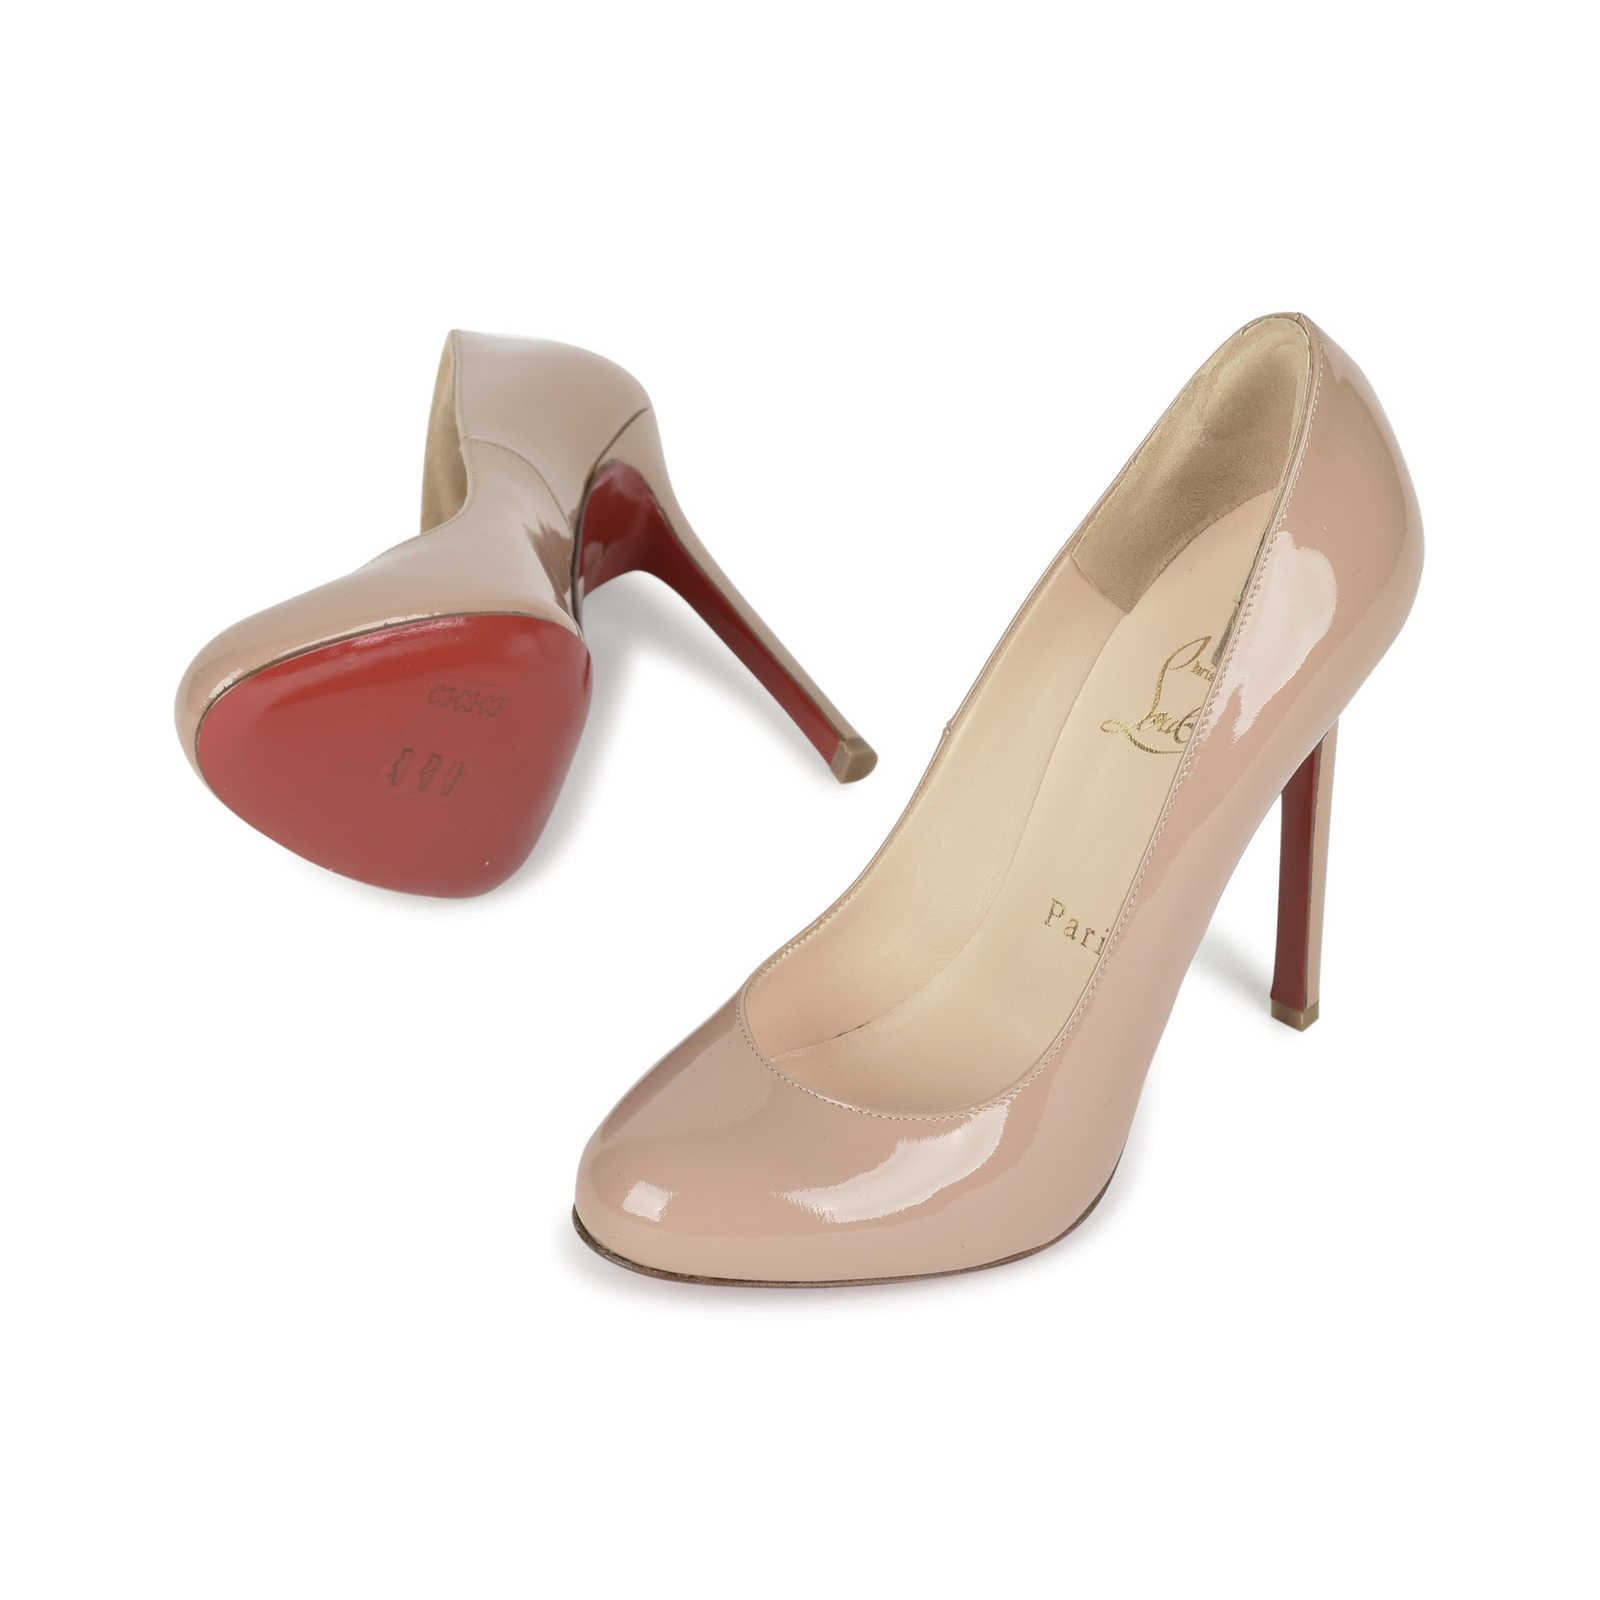 33797a24a9f5 ... Authentic Second Hand Christian Louboutin Fifi 120 Pumps  (PSS-080-00237) ...